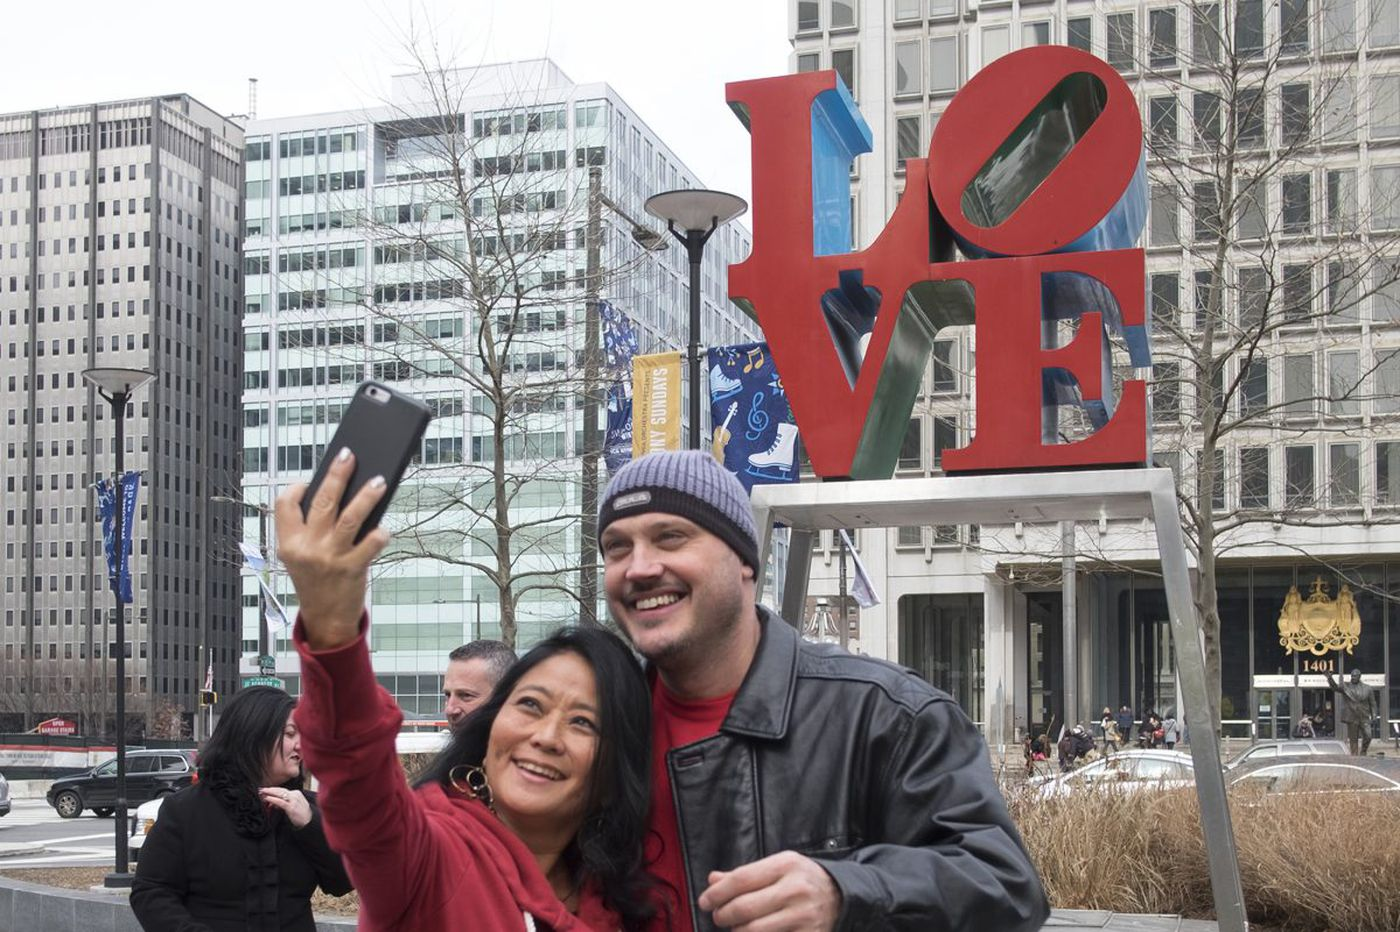 Why Robert Indiana's LOVE sculpture means so much to Philadelphians